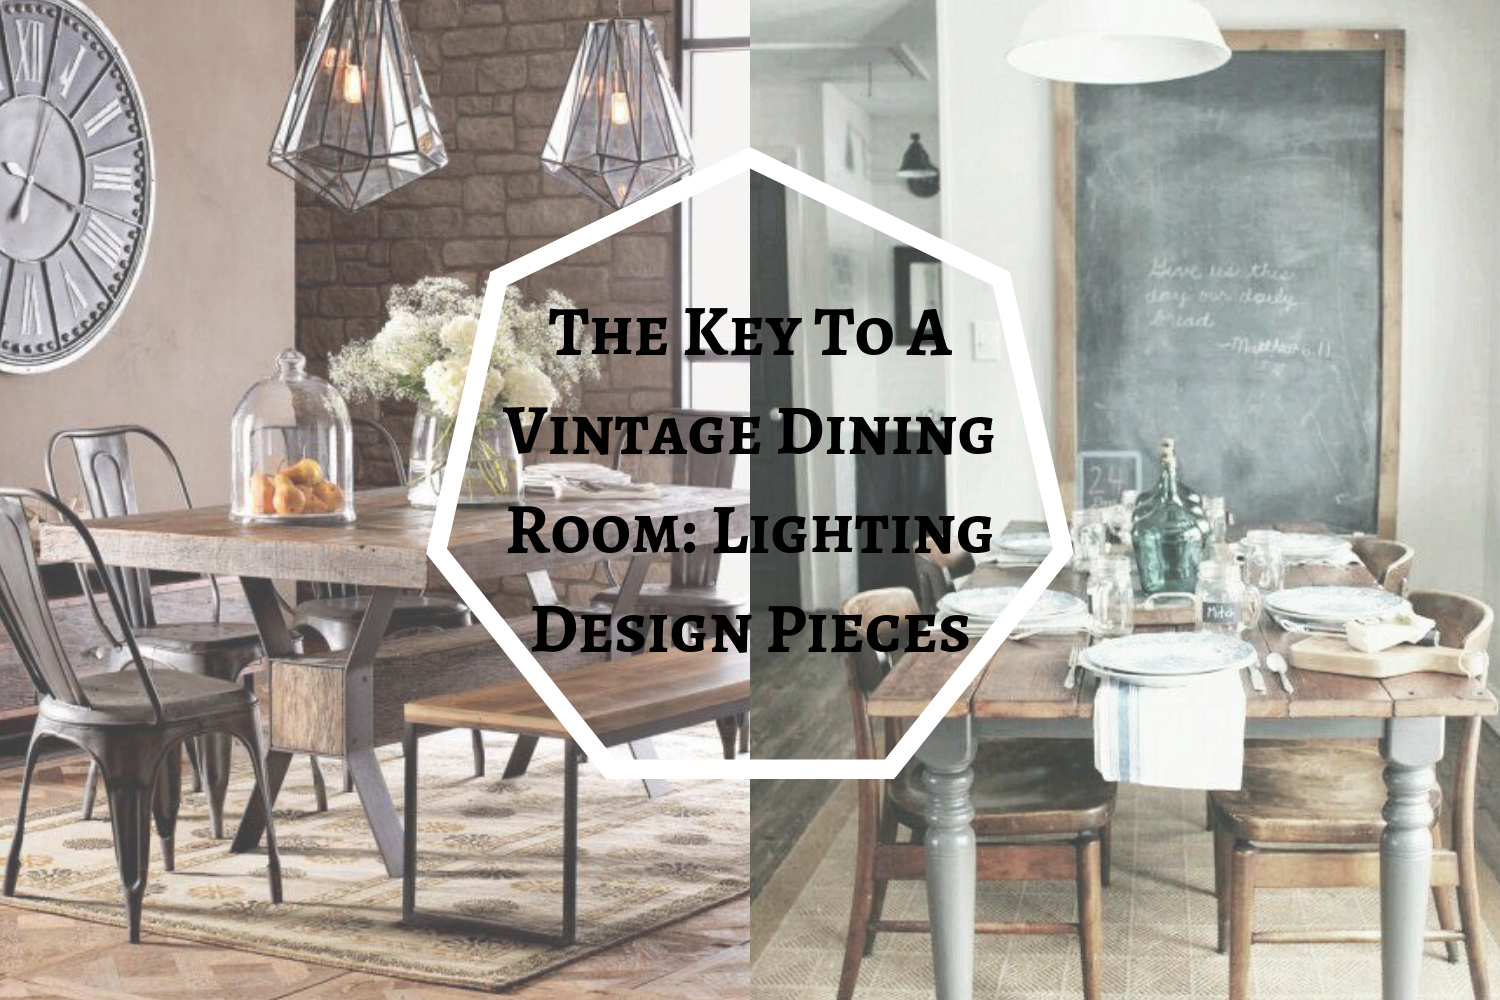 The key to a vintage dining room: lighting design pieces u2013 dining